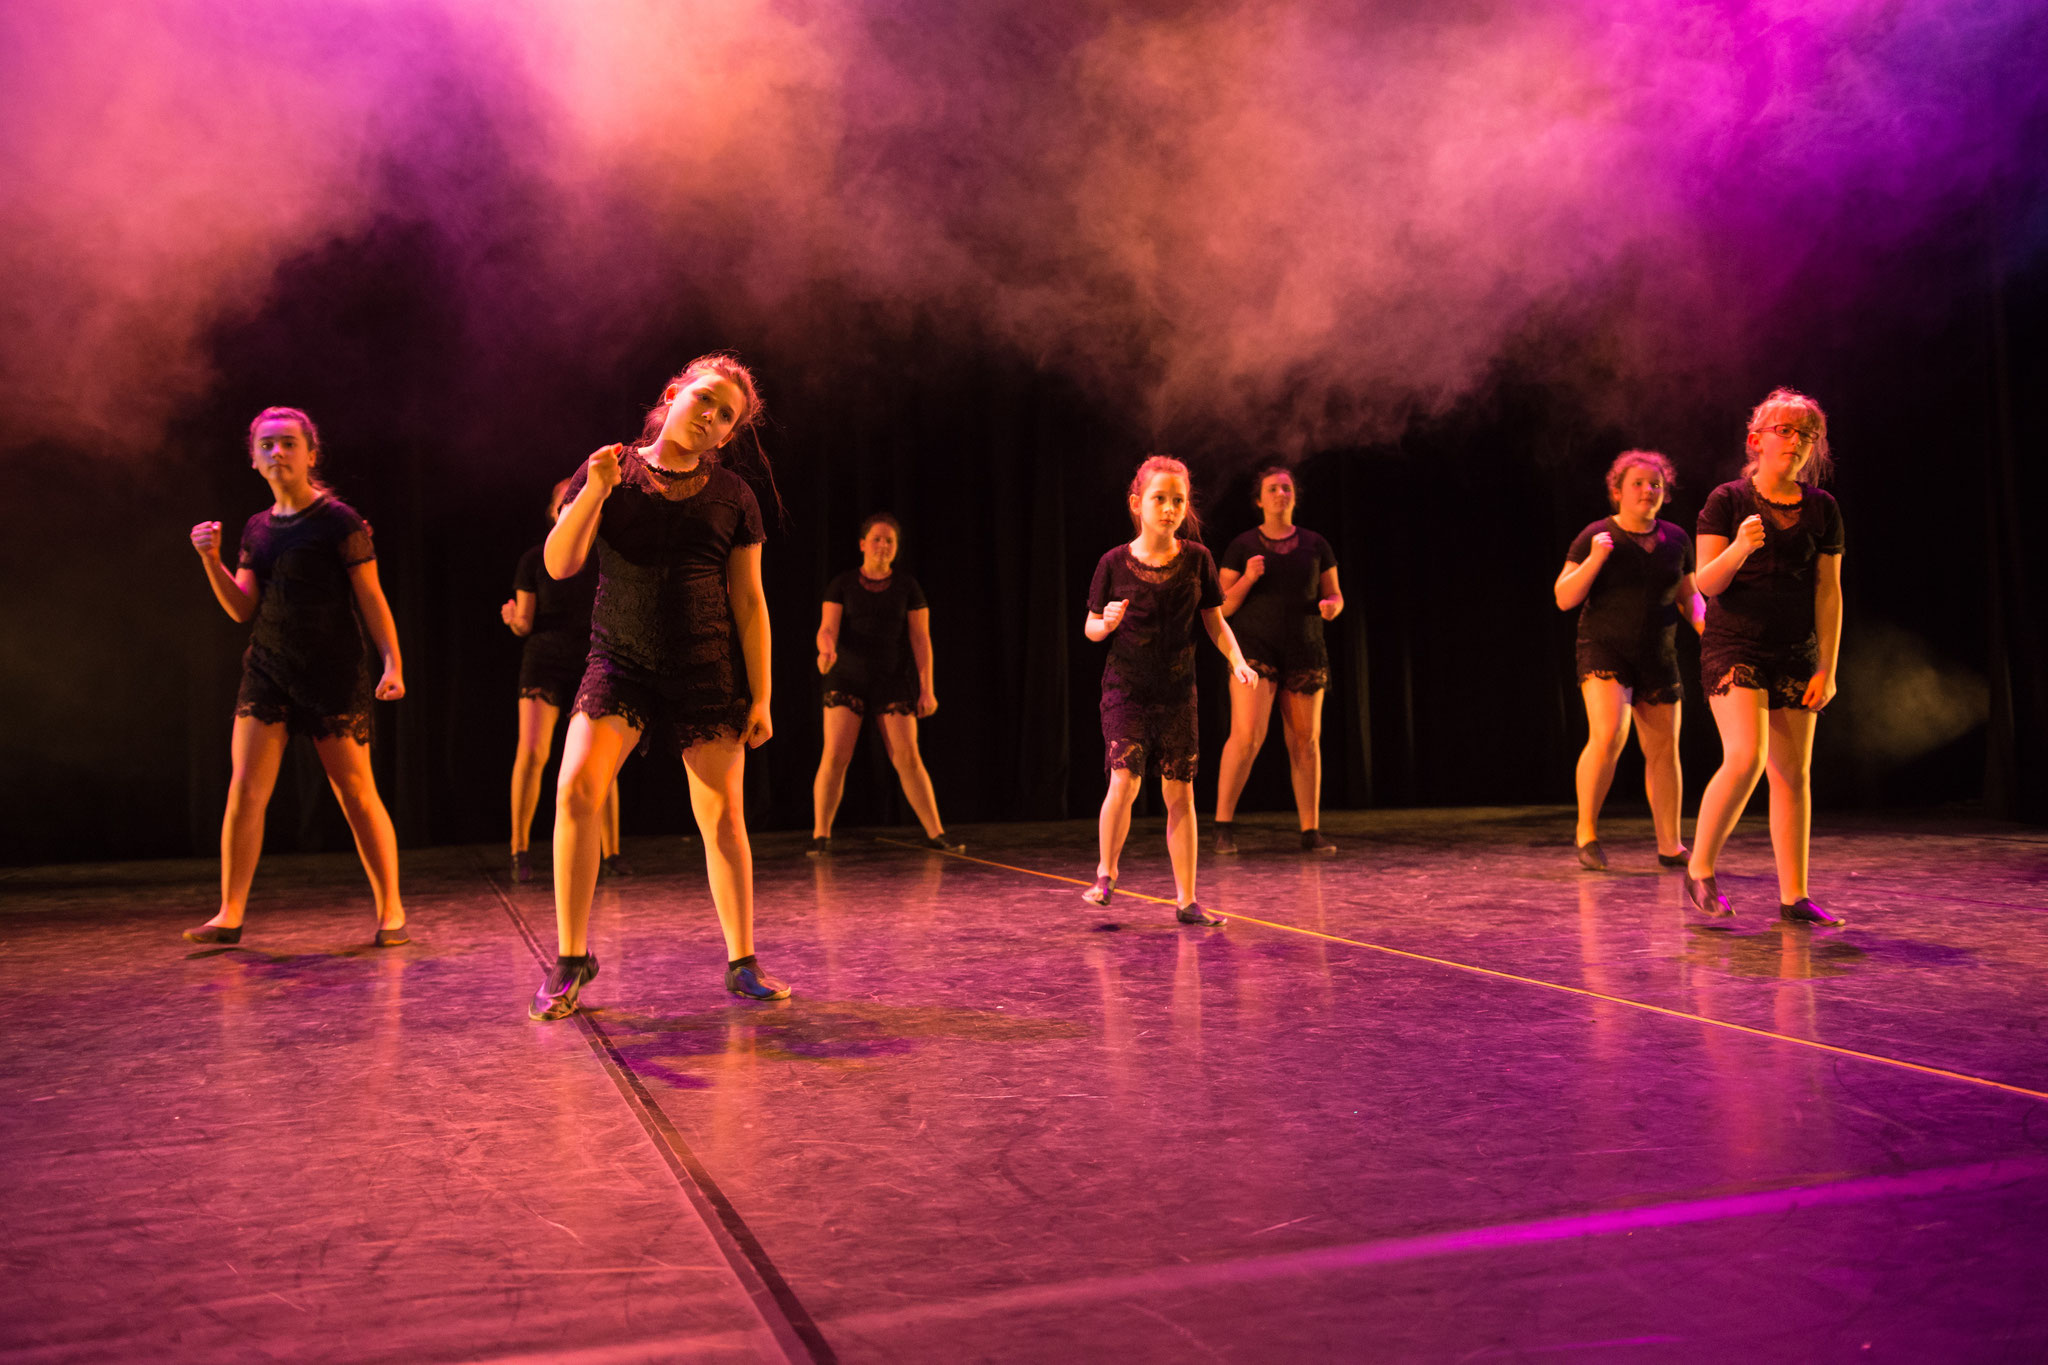 CarMa Chicks YoungStars - Sweet Dreams - Photo by Rainer Bolte Photography